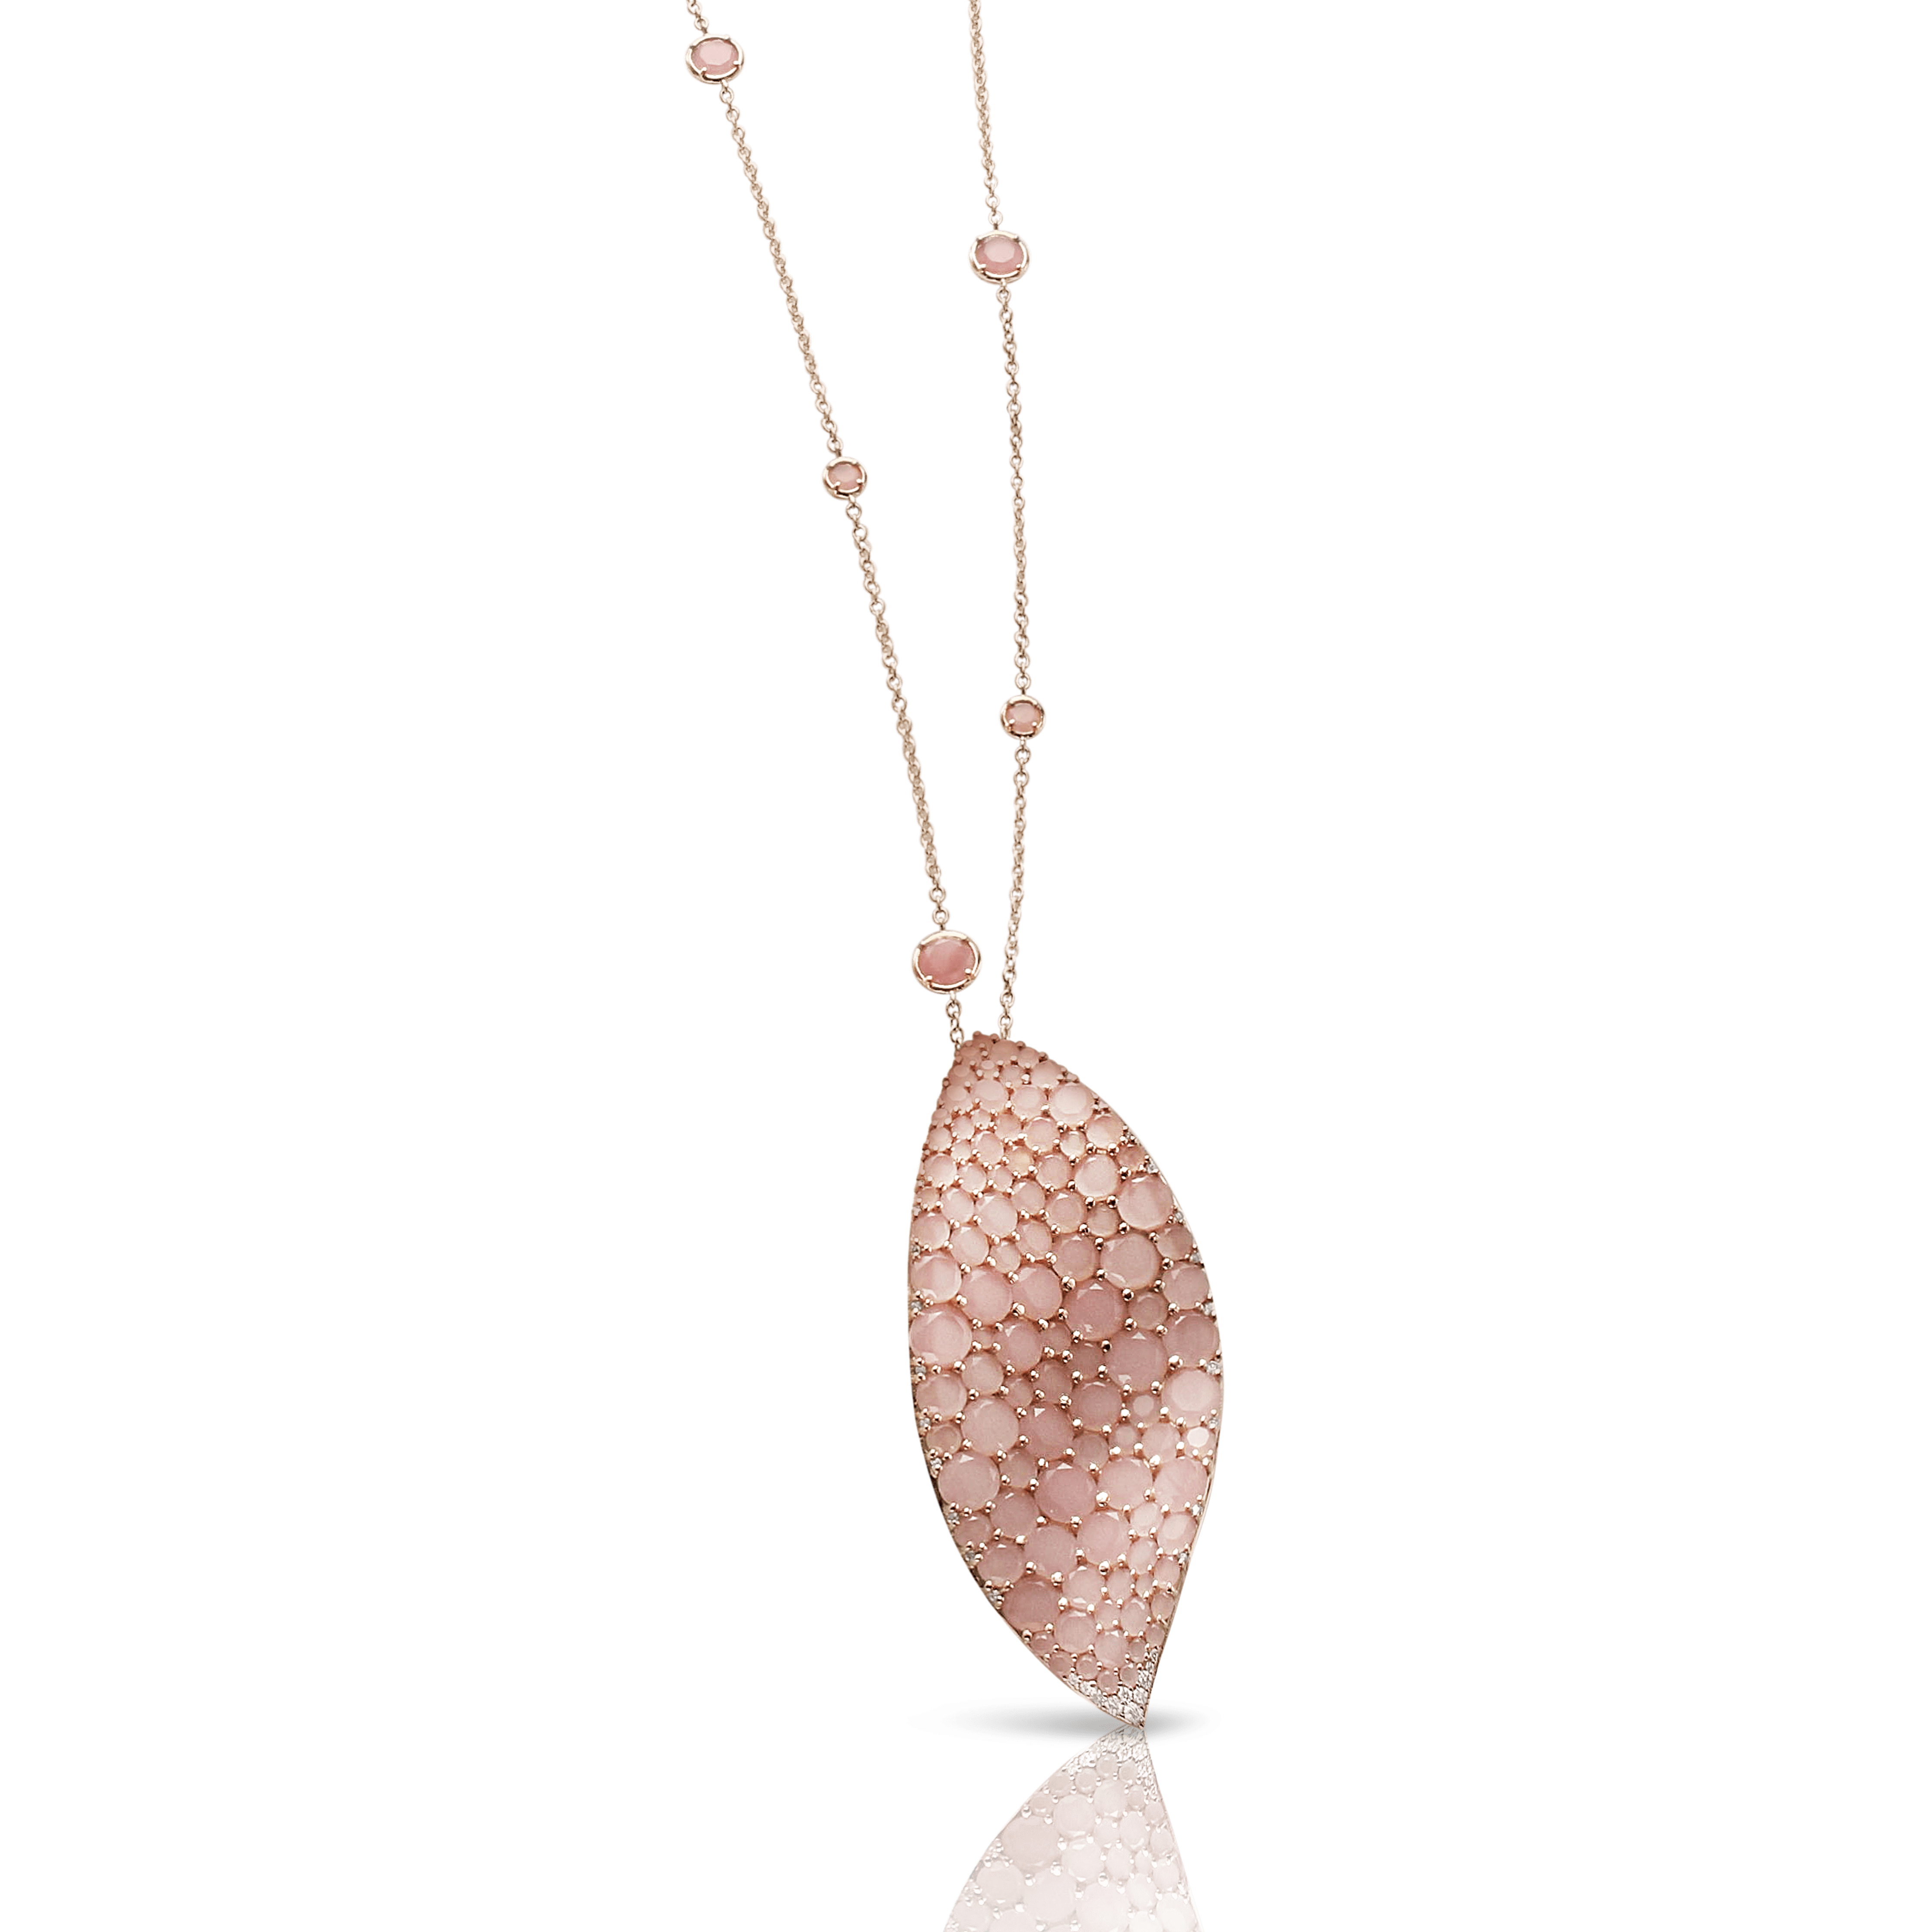 18k Rose Gold Lakshmi Necklace with Pink Chalcedony and Diamonds